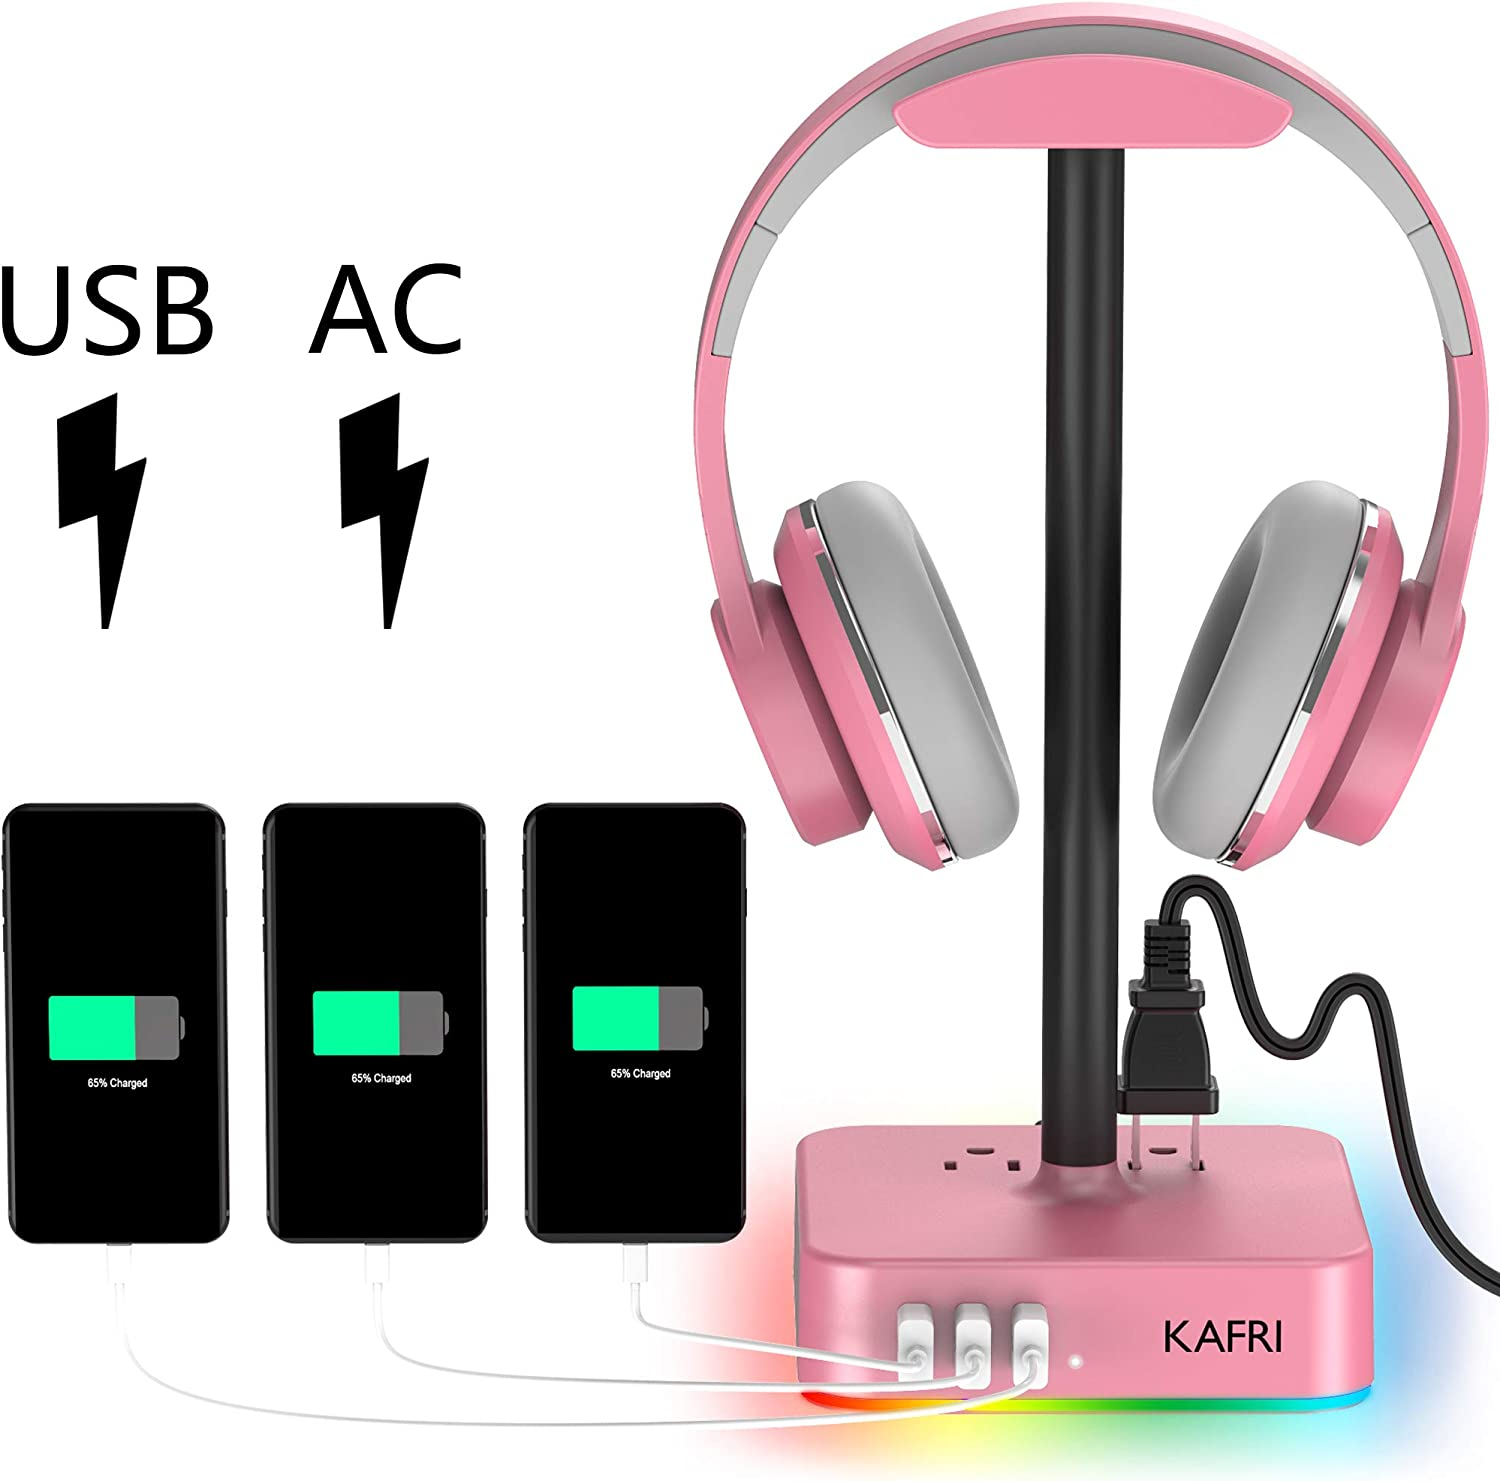 RGB Headphone Stand with USB Charger KAFRI Desk Gaming Headset Holder Hanger Rack with 3 USB Charging Port and 2 Outlet - Suitable for Gamer Desktop Table Game Earphone Accessories Girlfriend Gift